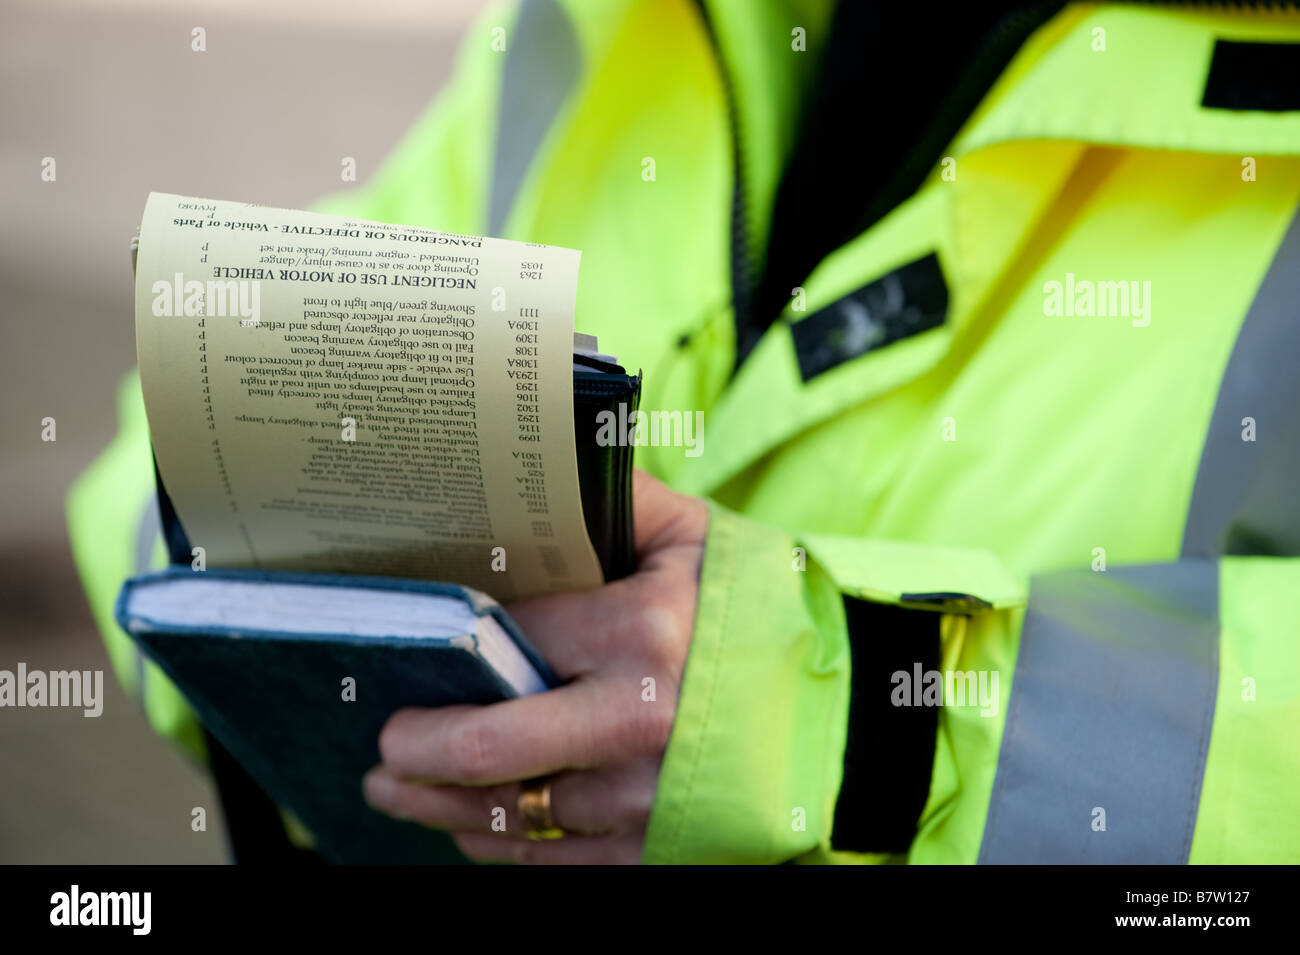 A UK traffic warden issuing a parking ticket for a car - Stock Image